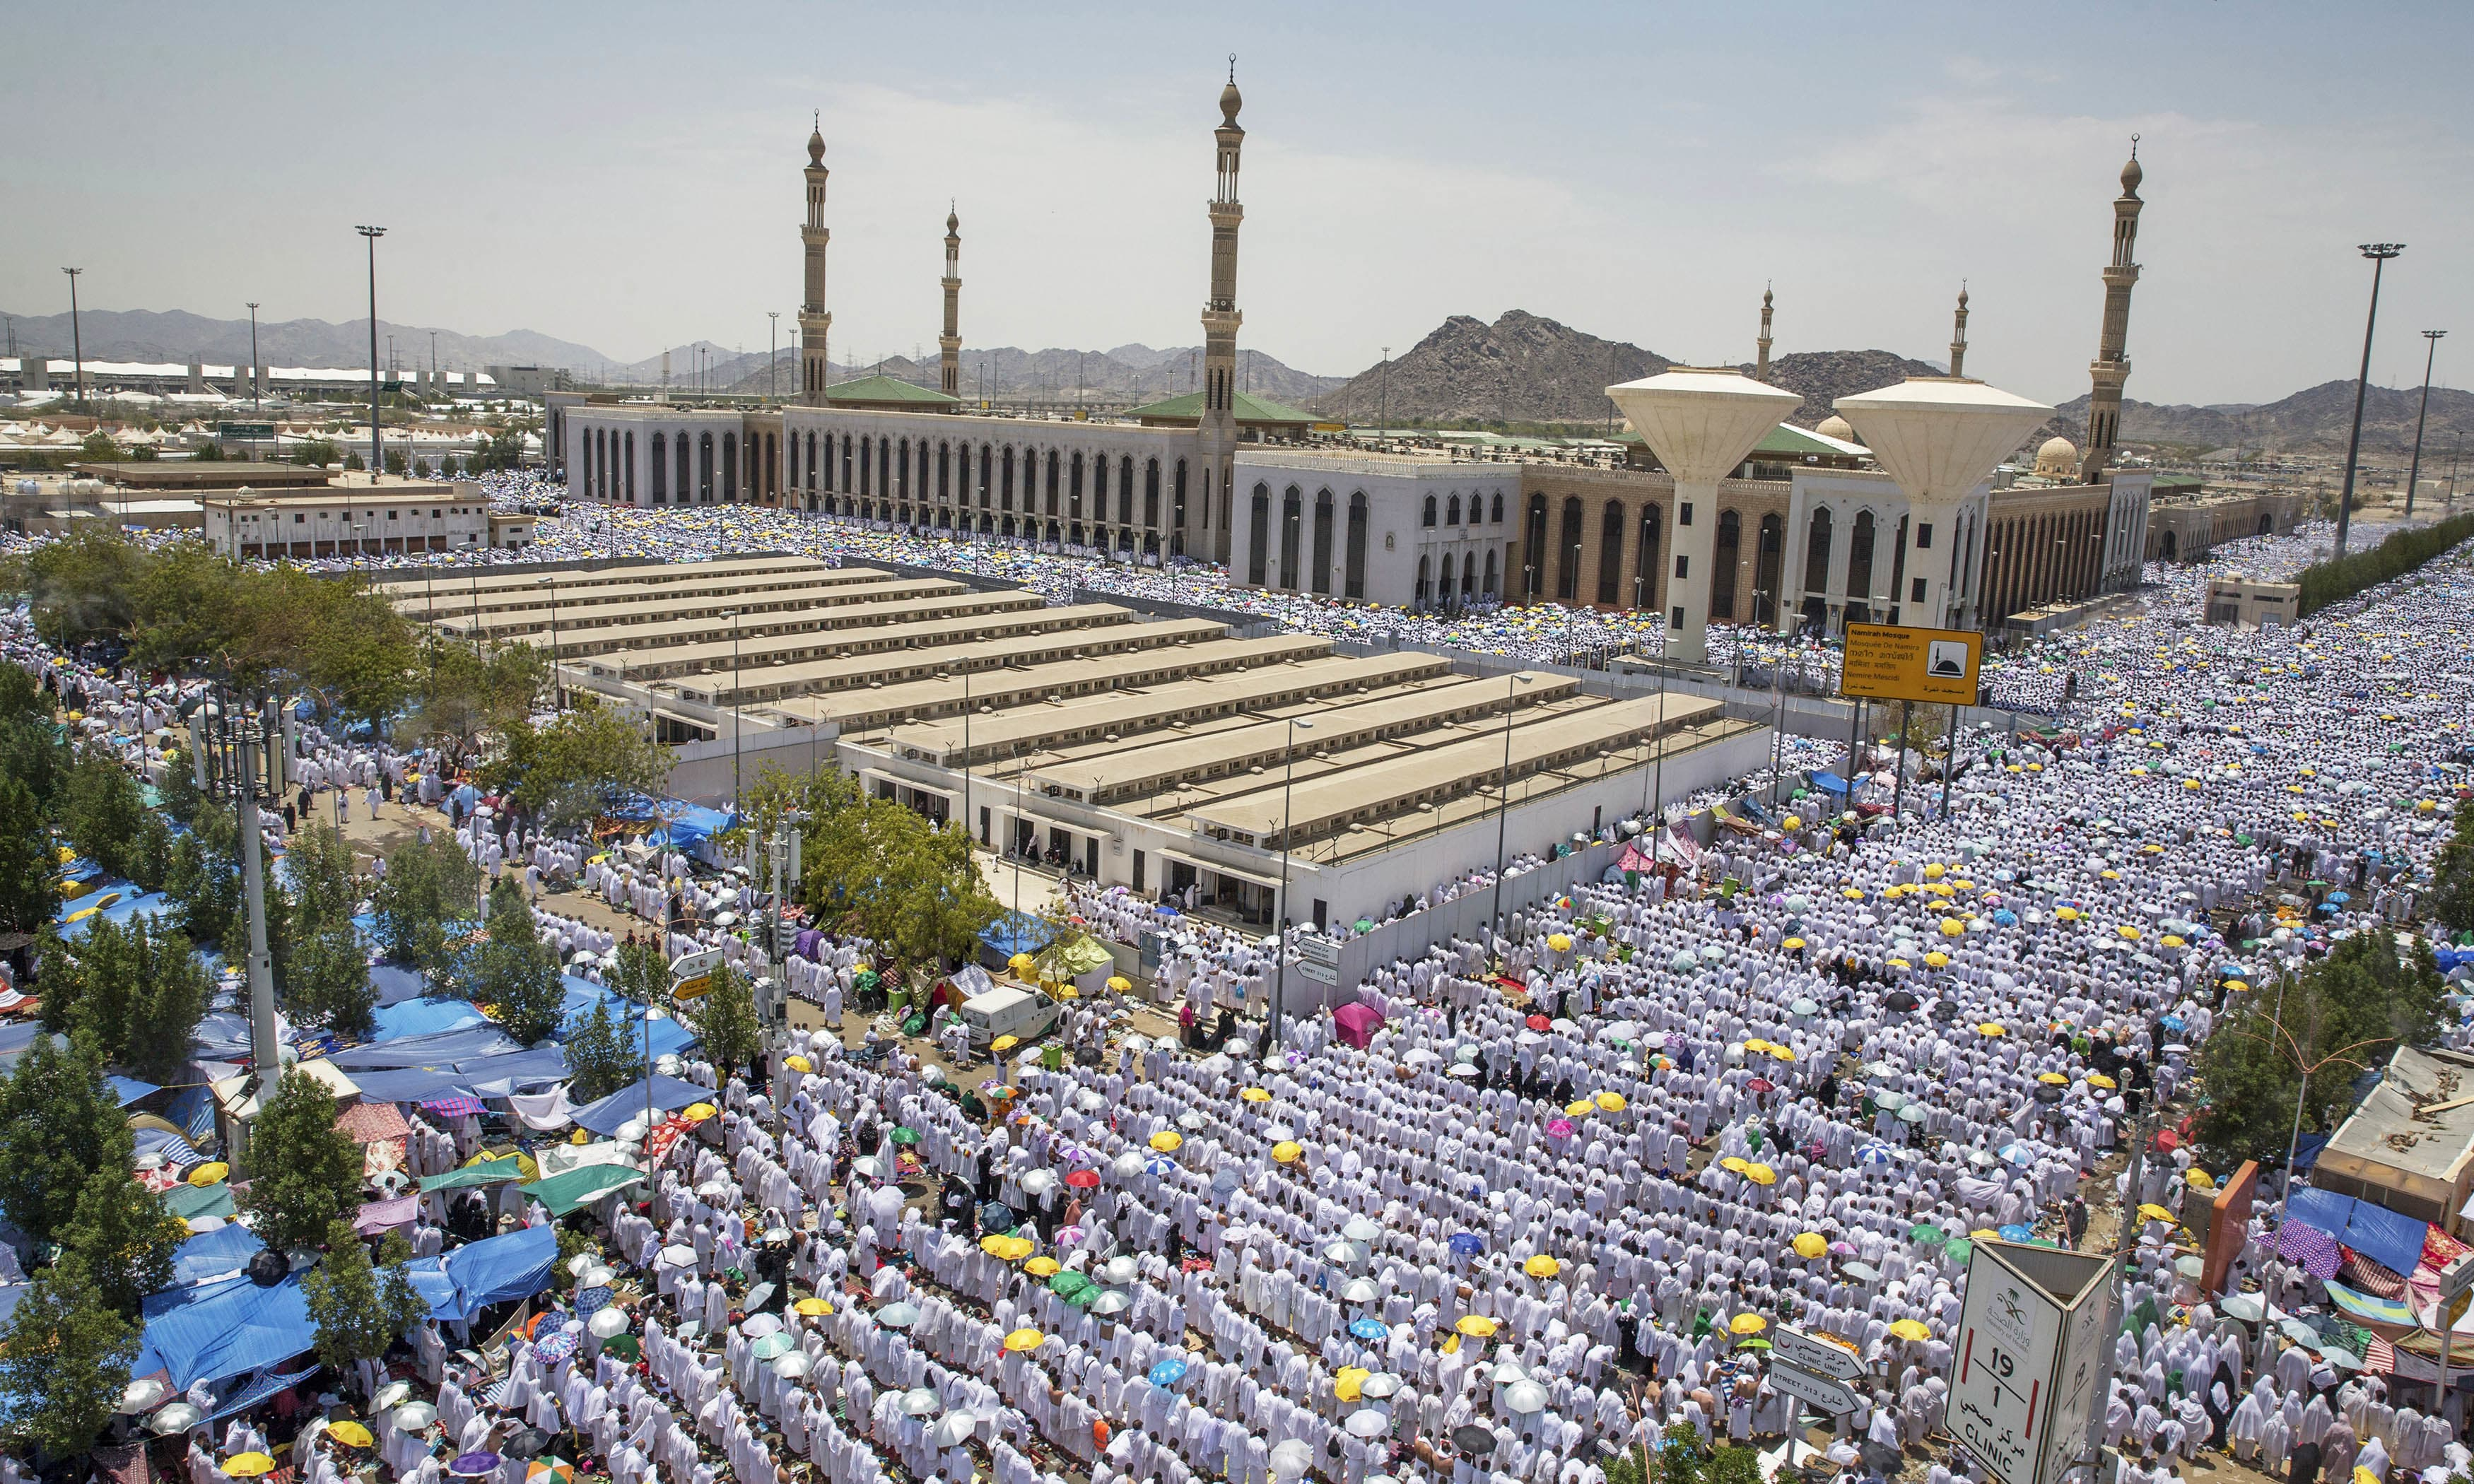 Pilgrims attend noon prayers outside the Namirah mosque on Arafat Mountain. —AFP